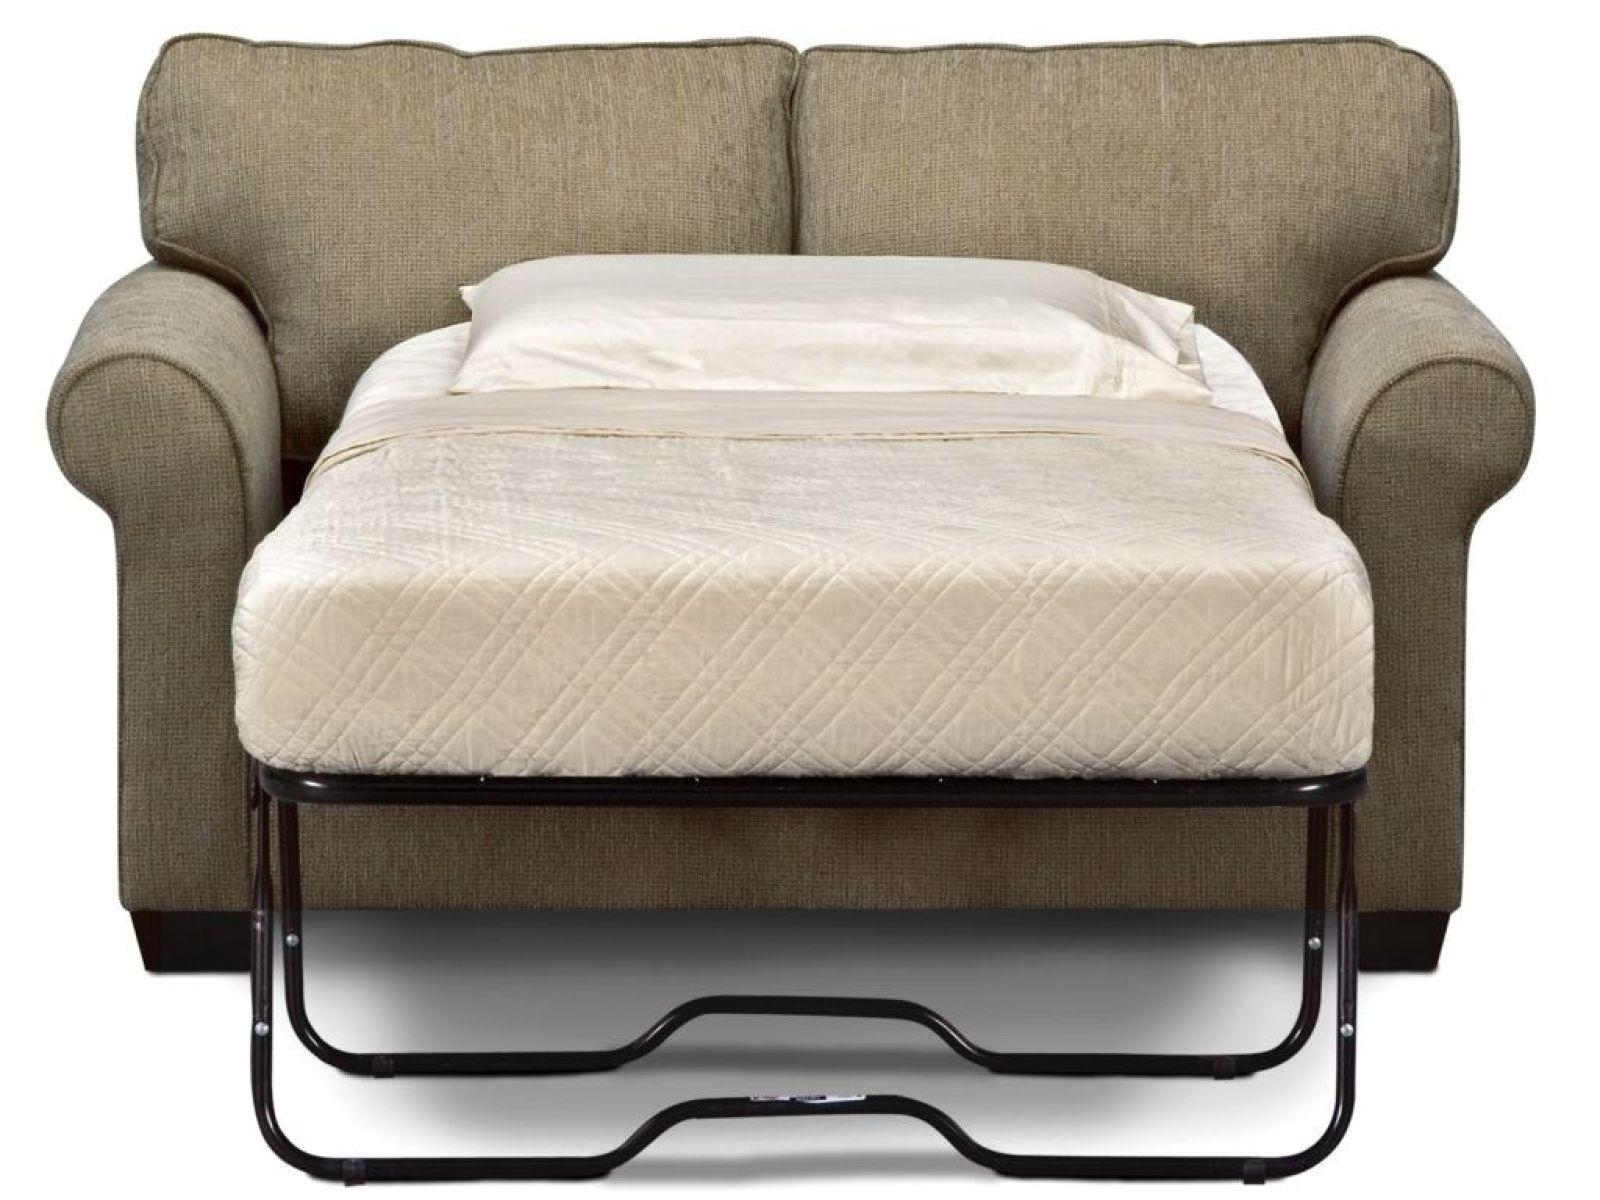 ▻ Sofa : 39 Lovely Sectional Sofa Bed Ikea 1175447133 Ikea Alvros Intended For Sofa Beds Chairs (View 15 of 20)